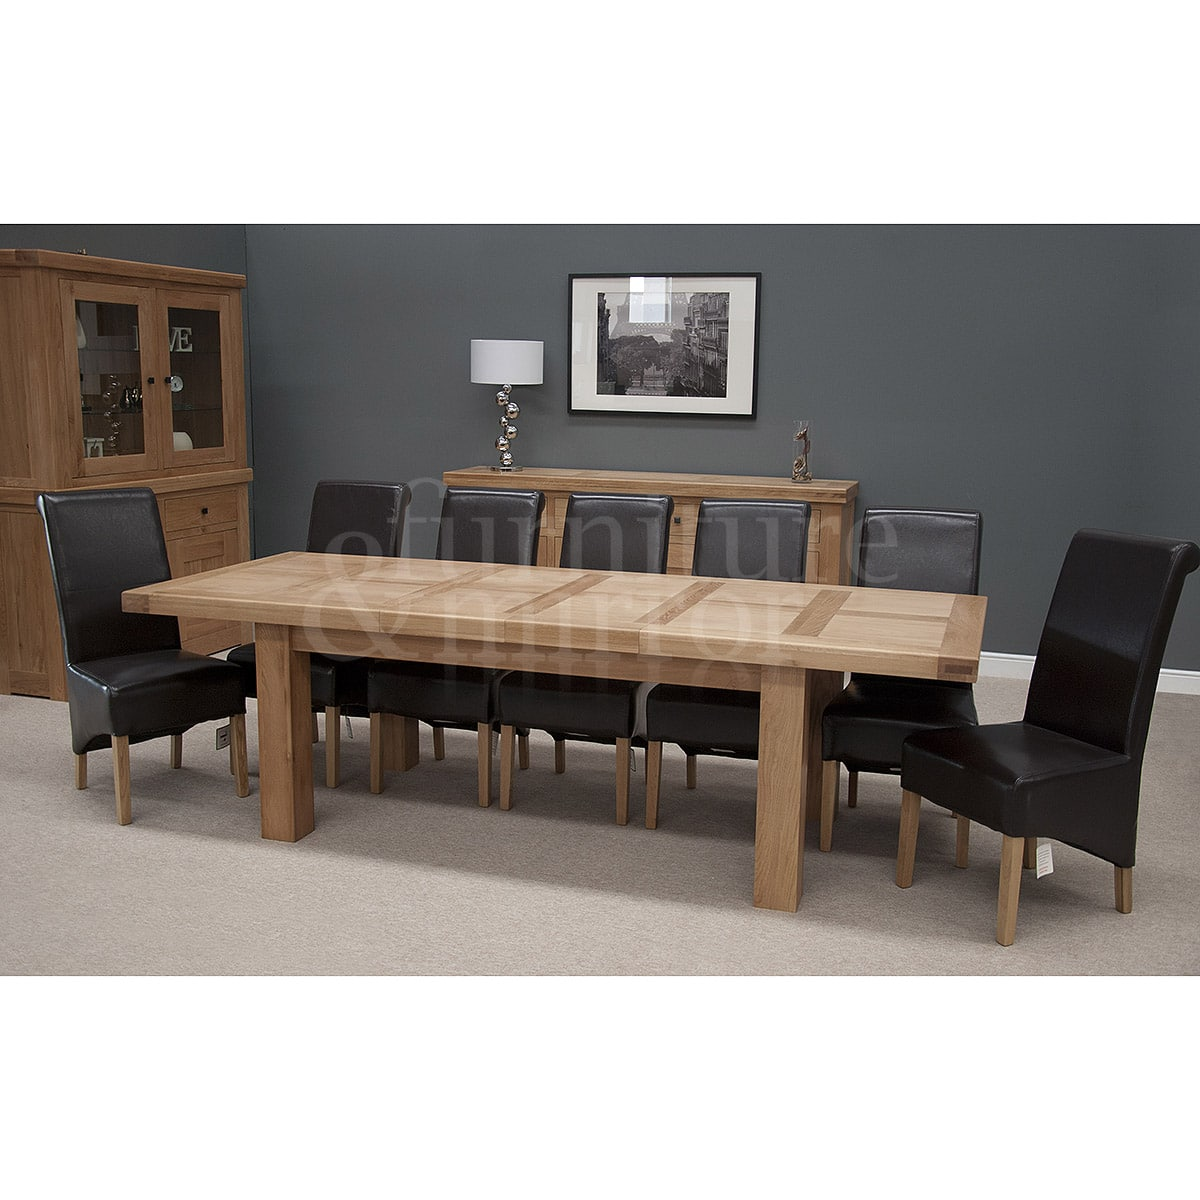 Chunky 12 seater dining table furniture and mirror - Seater dining tables ...